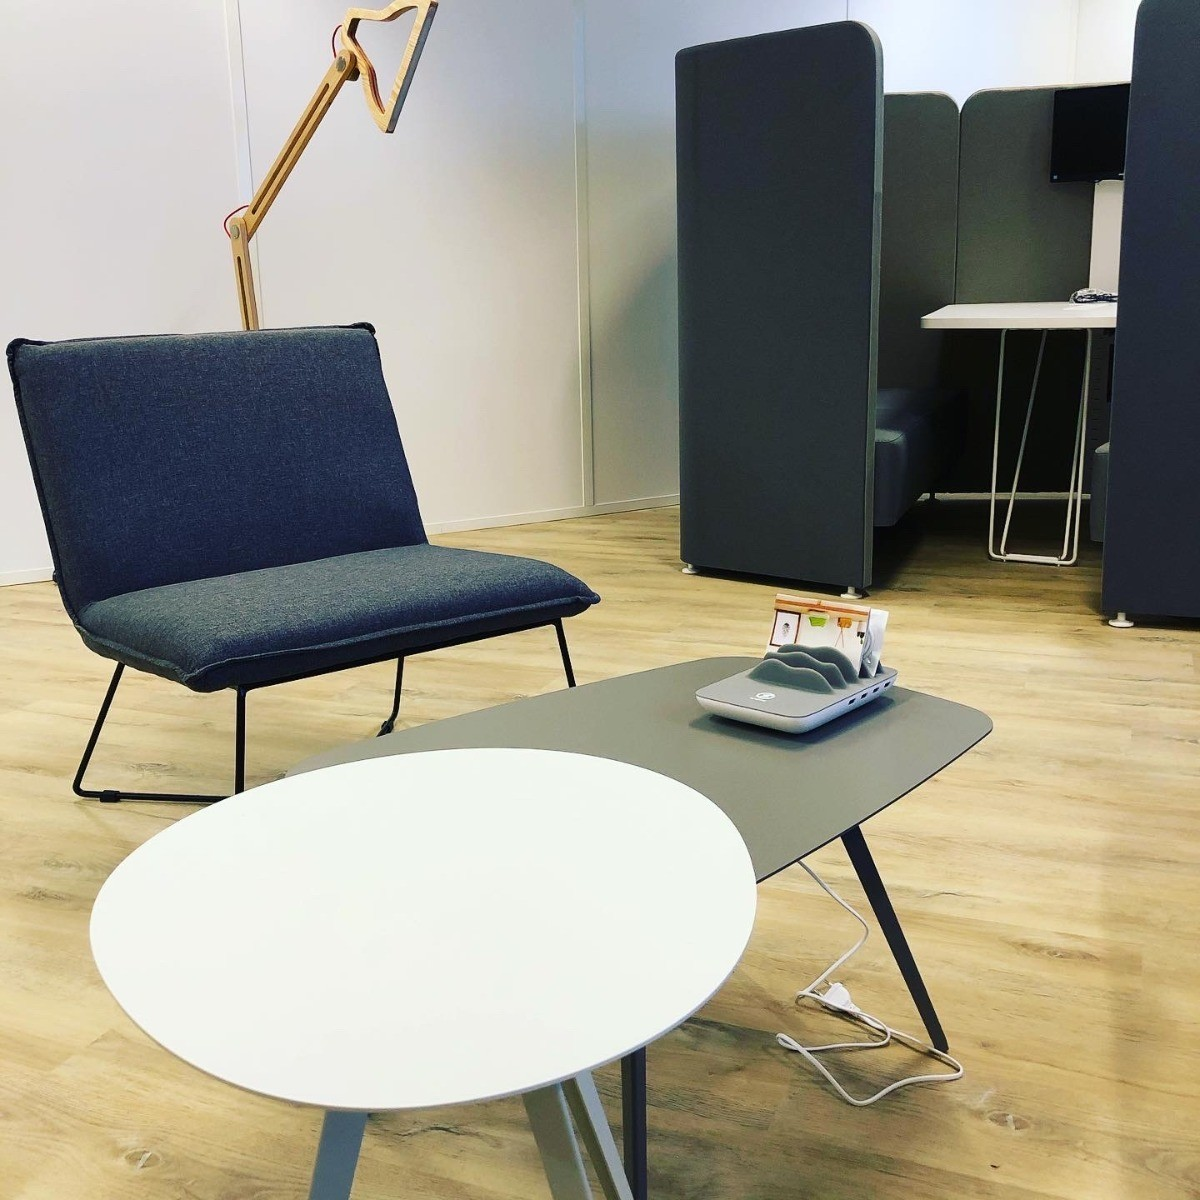 Zone cocooning avec tables basses Agora